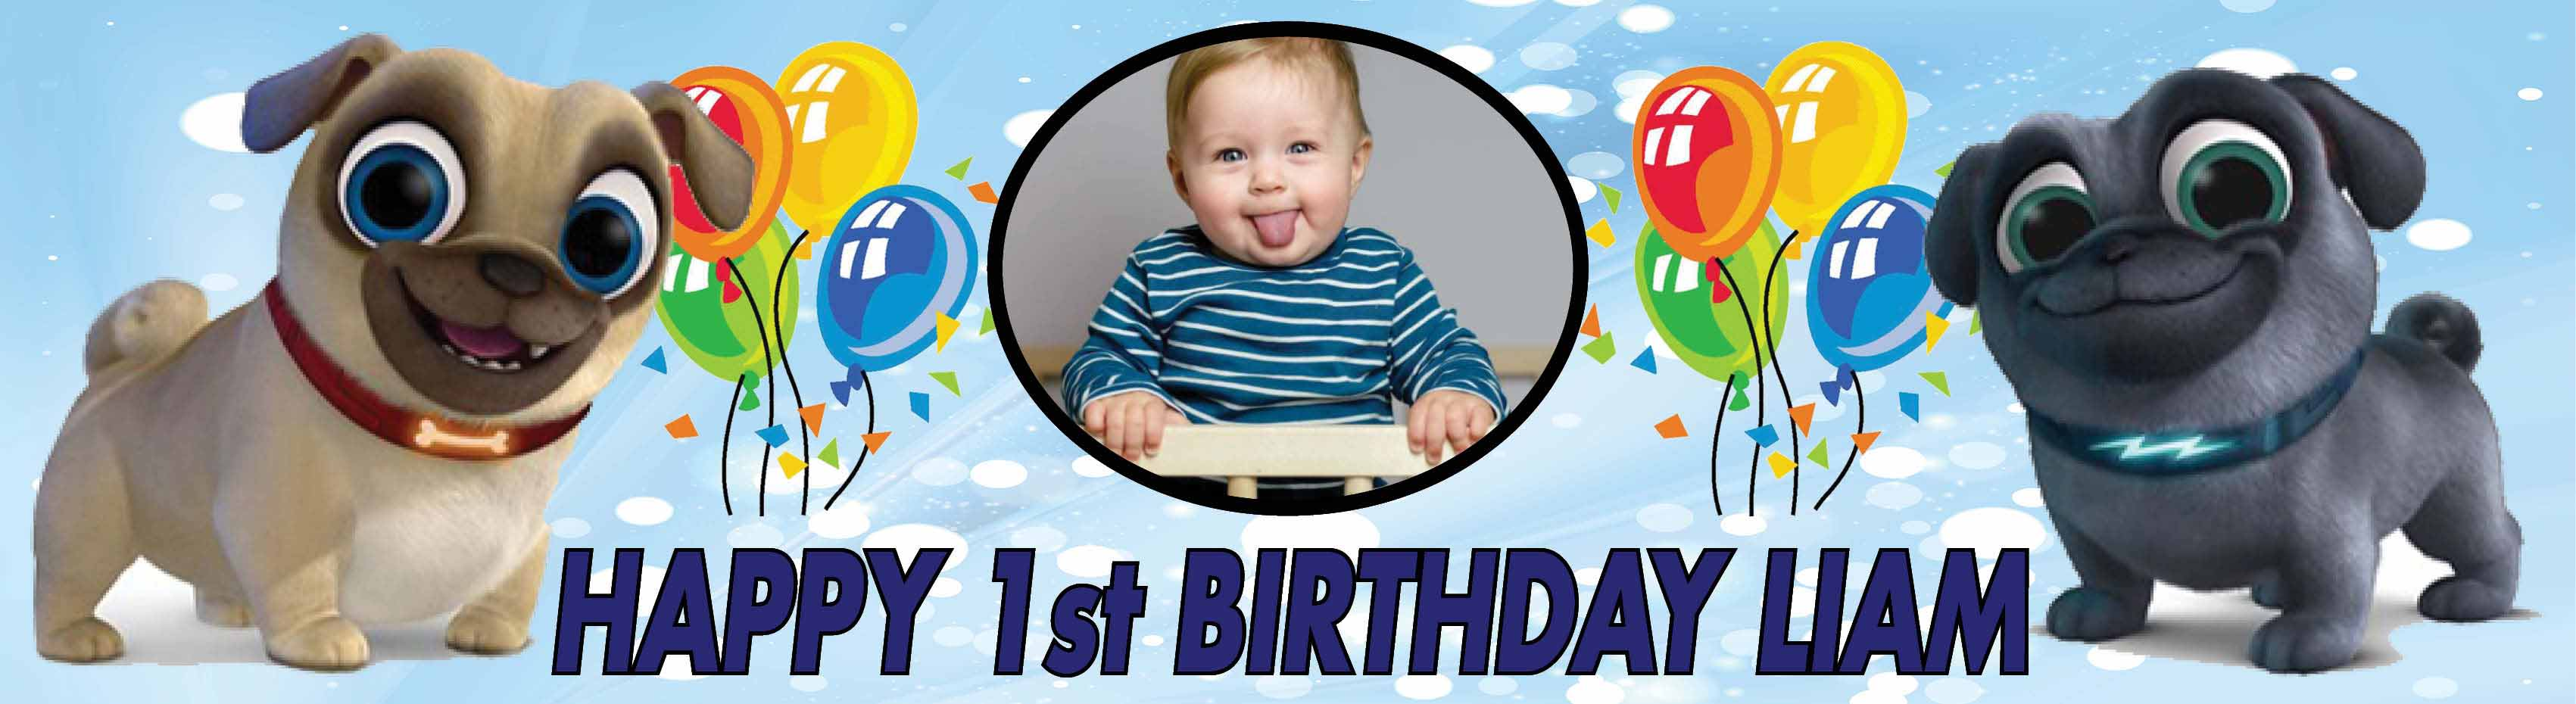 1st Birthday Party Banner 24